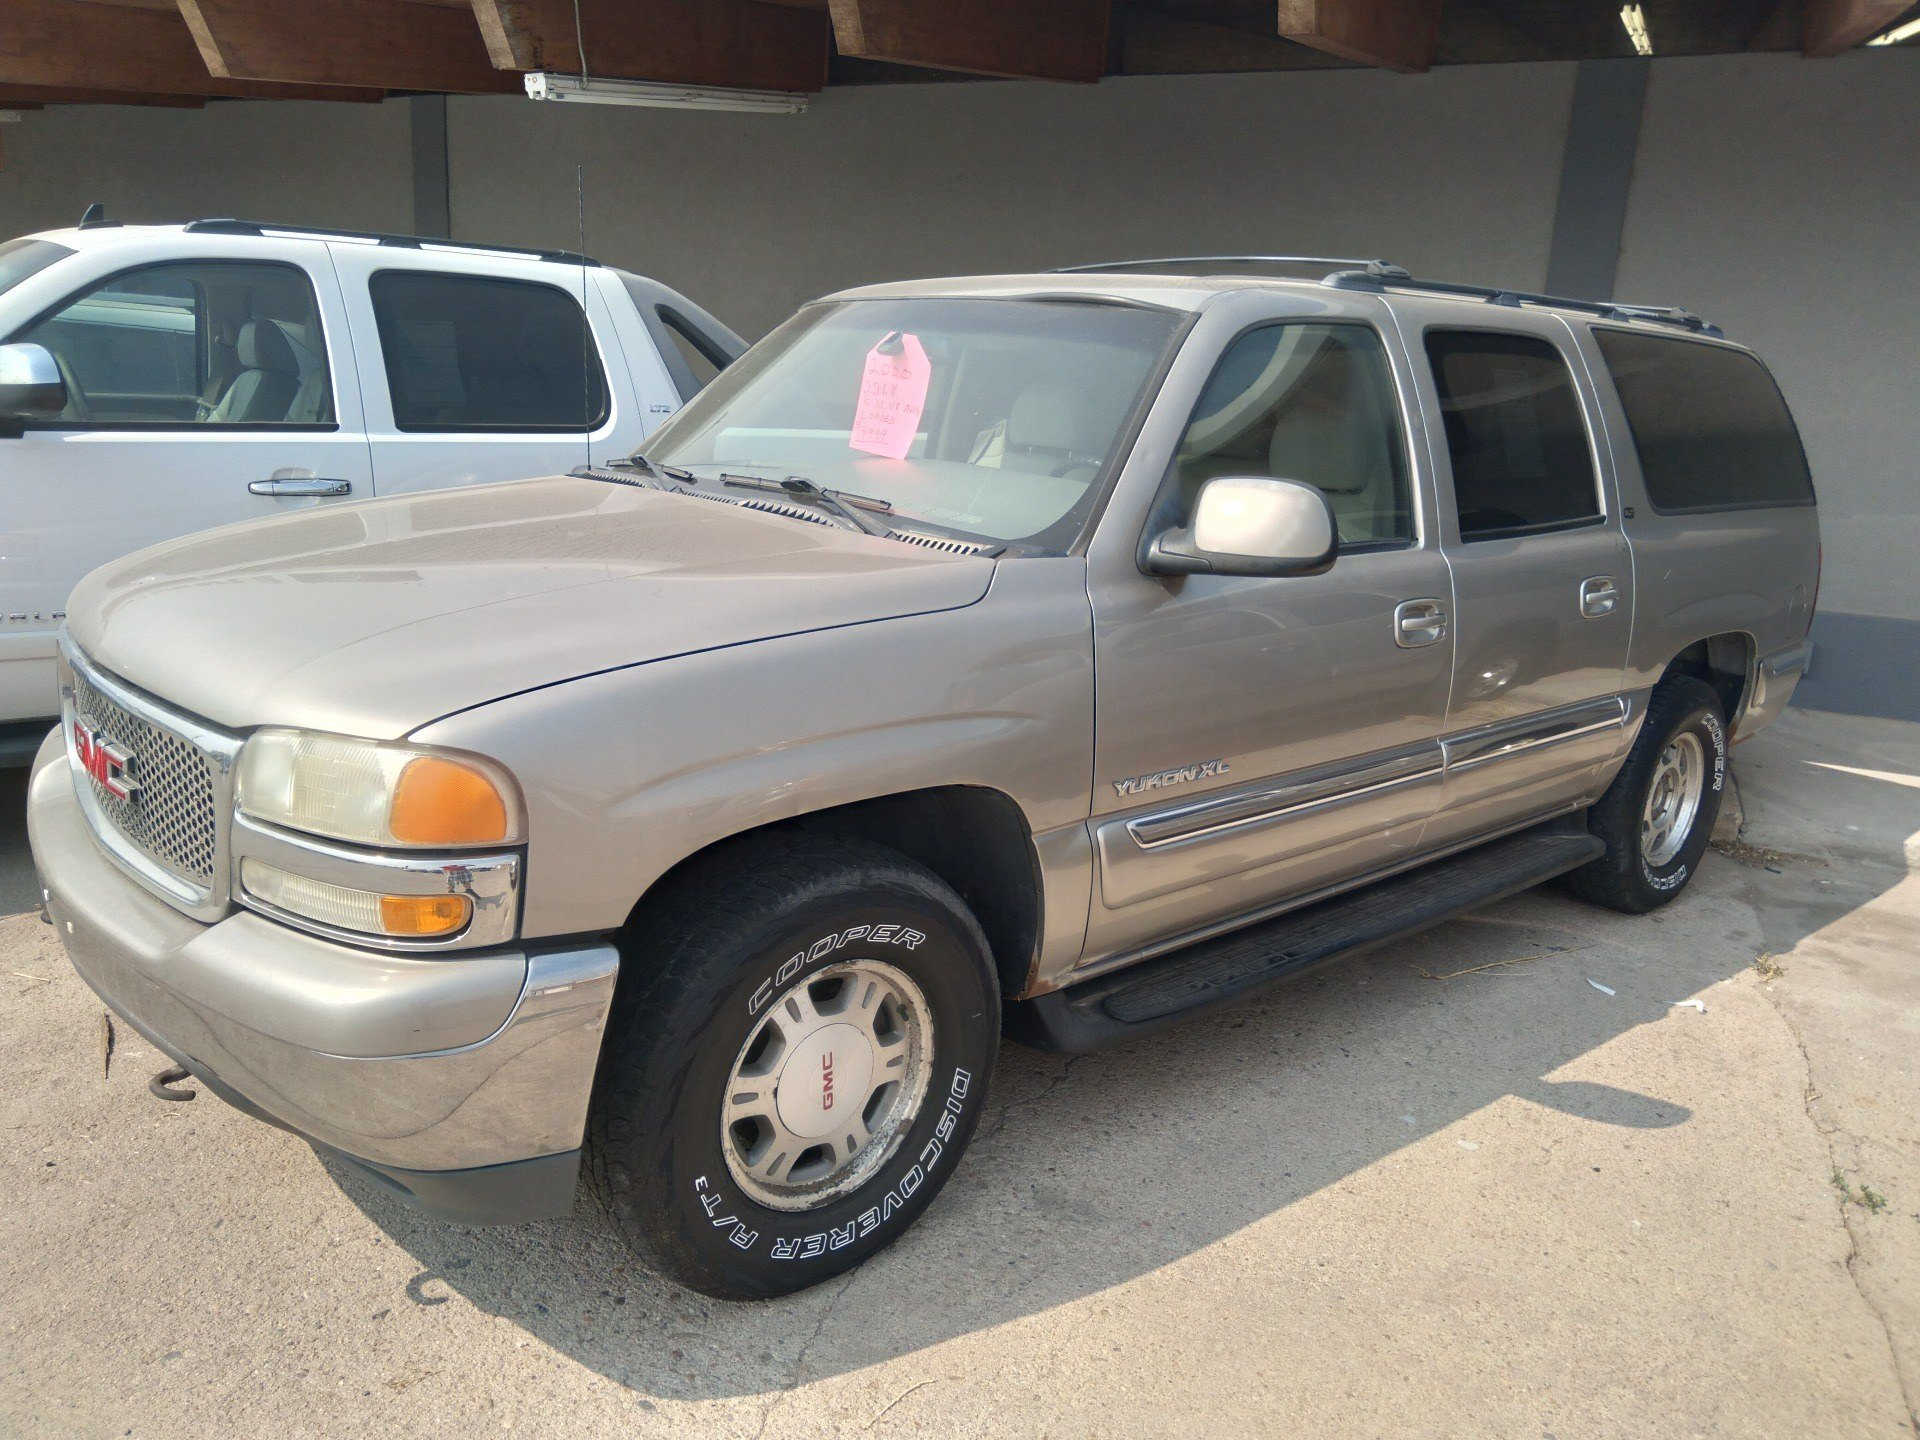 2000 GMC YUKON in Sterling, Colorado - Photo 1